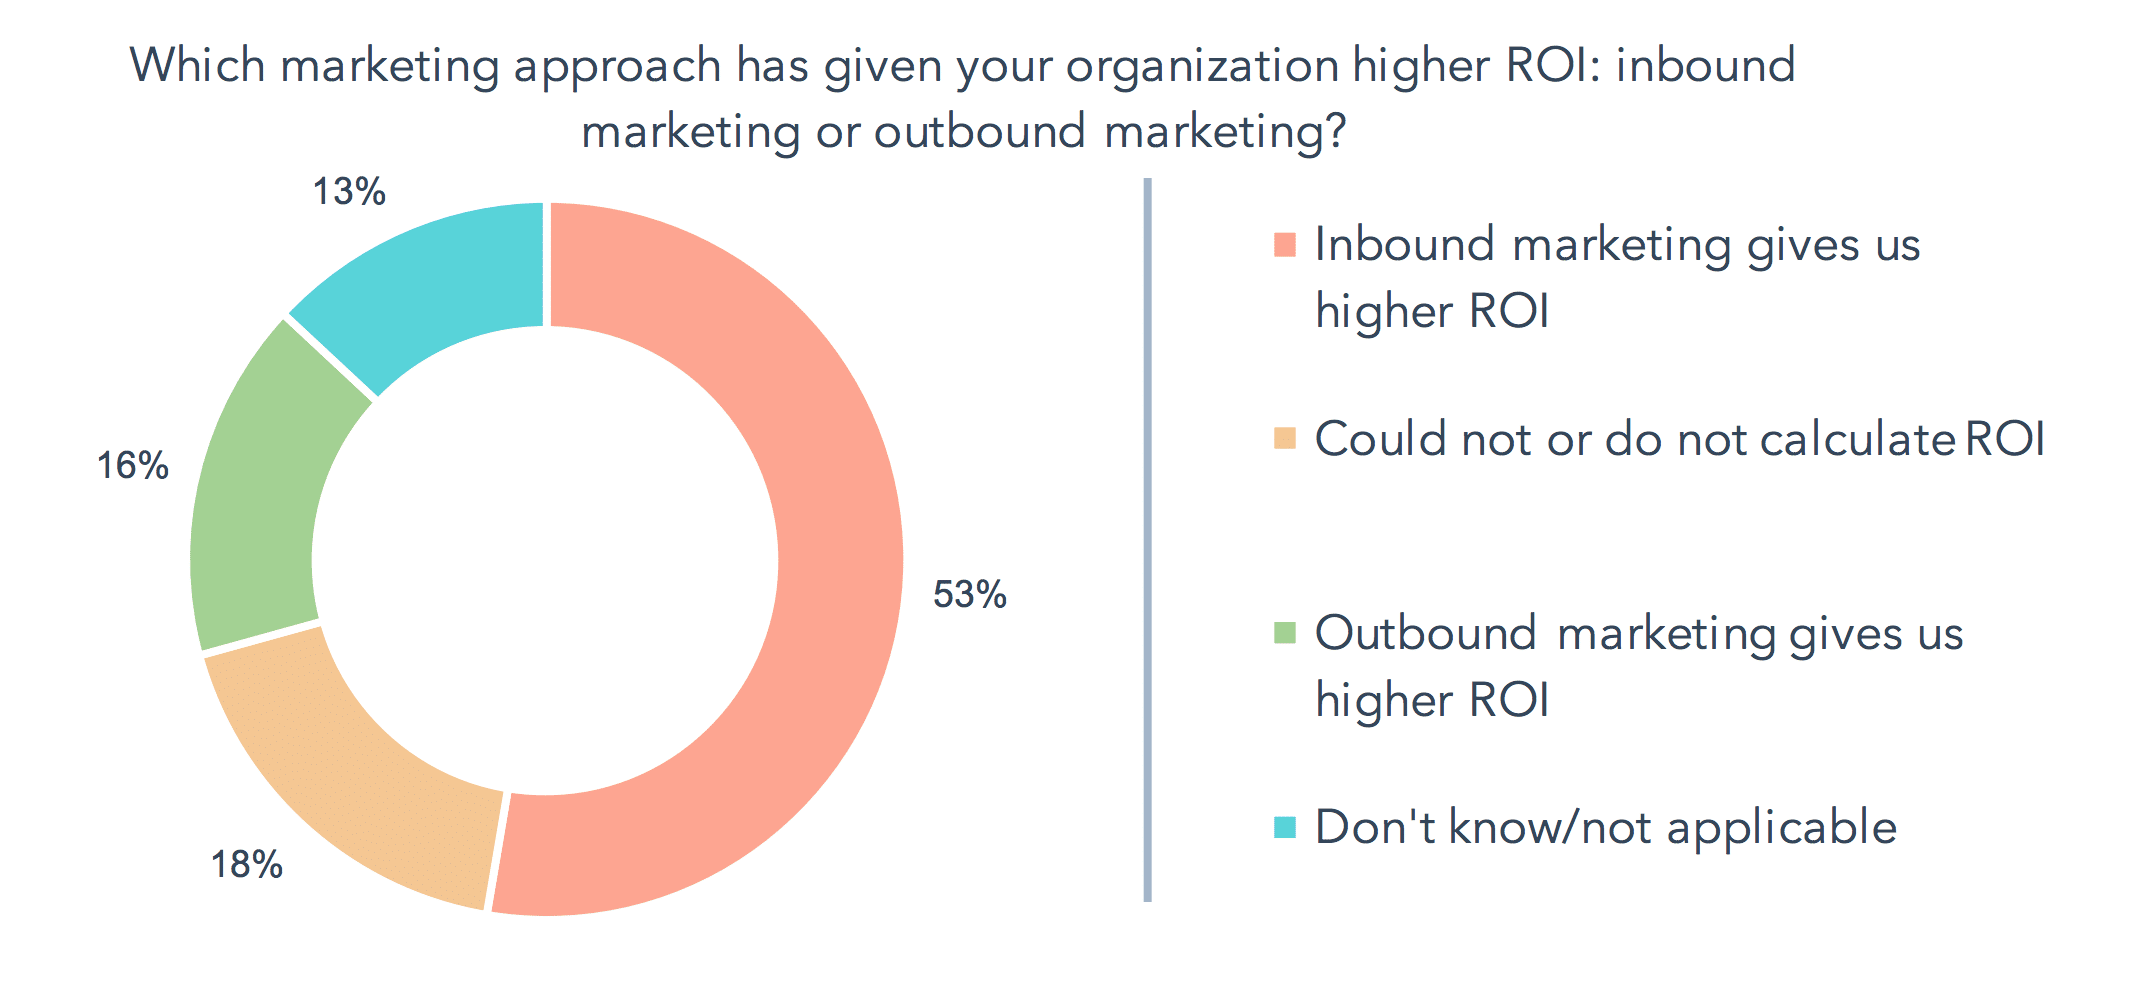 Marketers see higher ROI from inbound marketing tactics